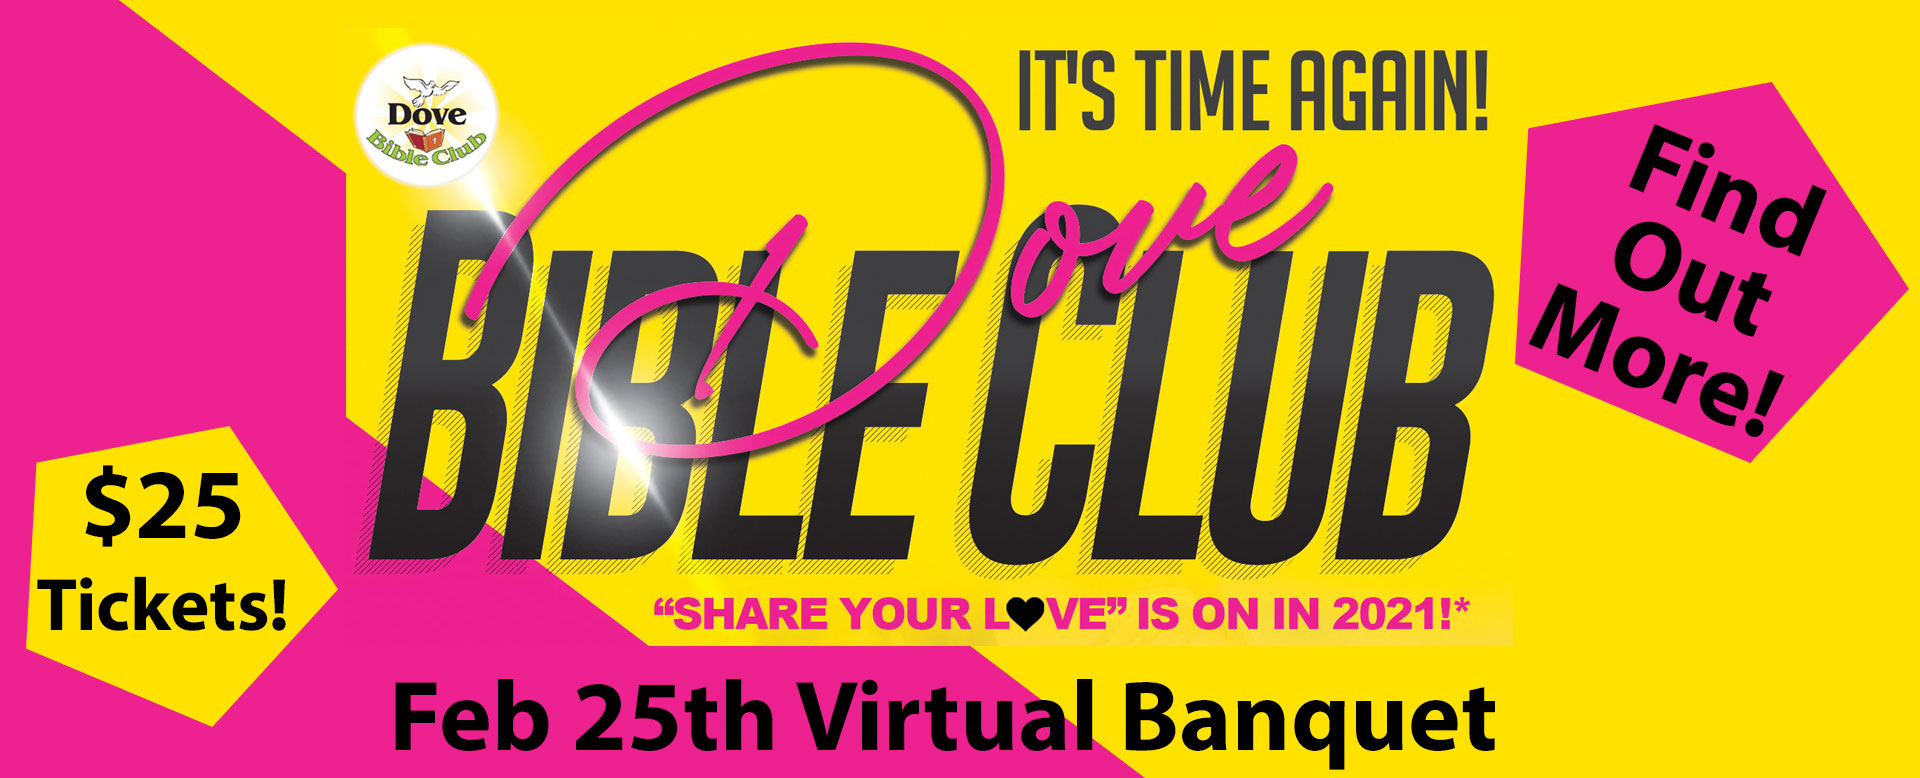 Dove Bible Club Virtual Banquet